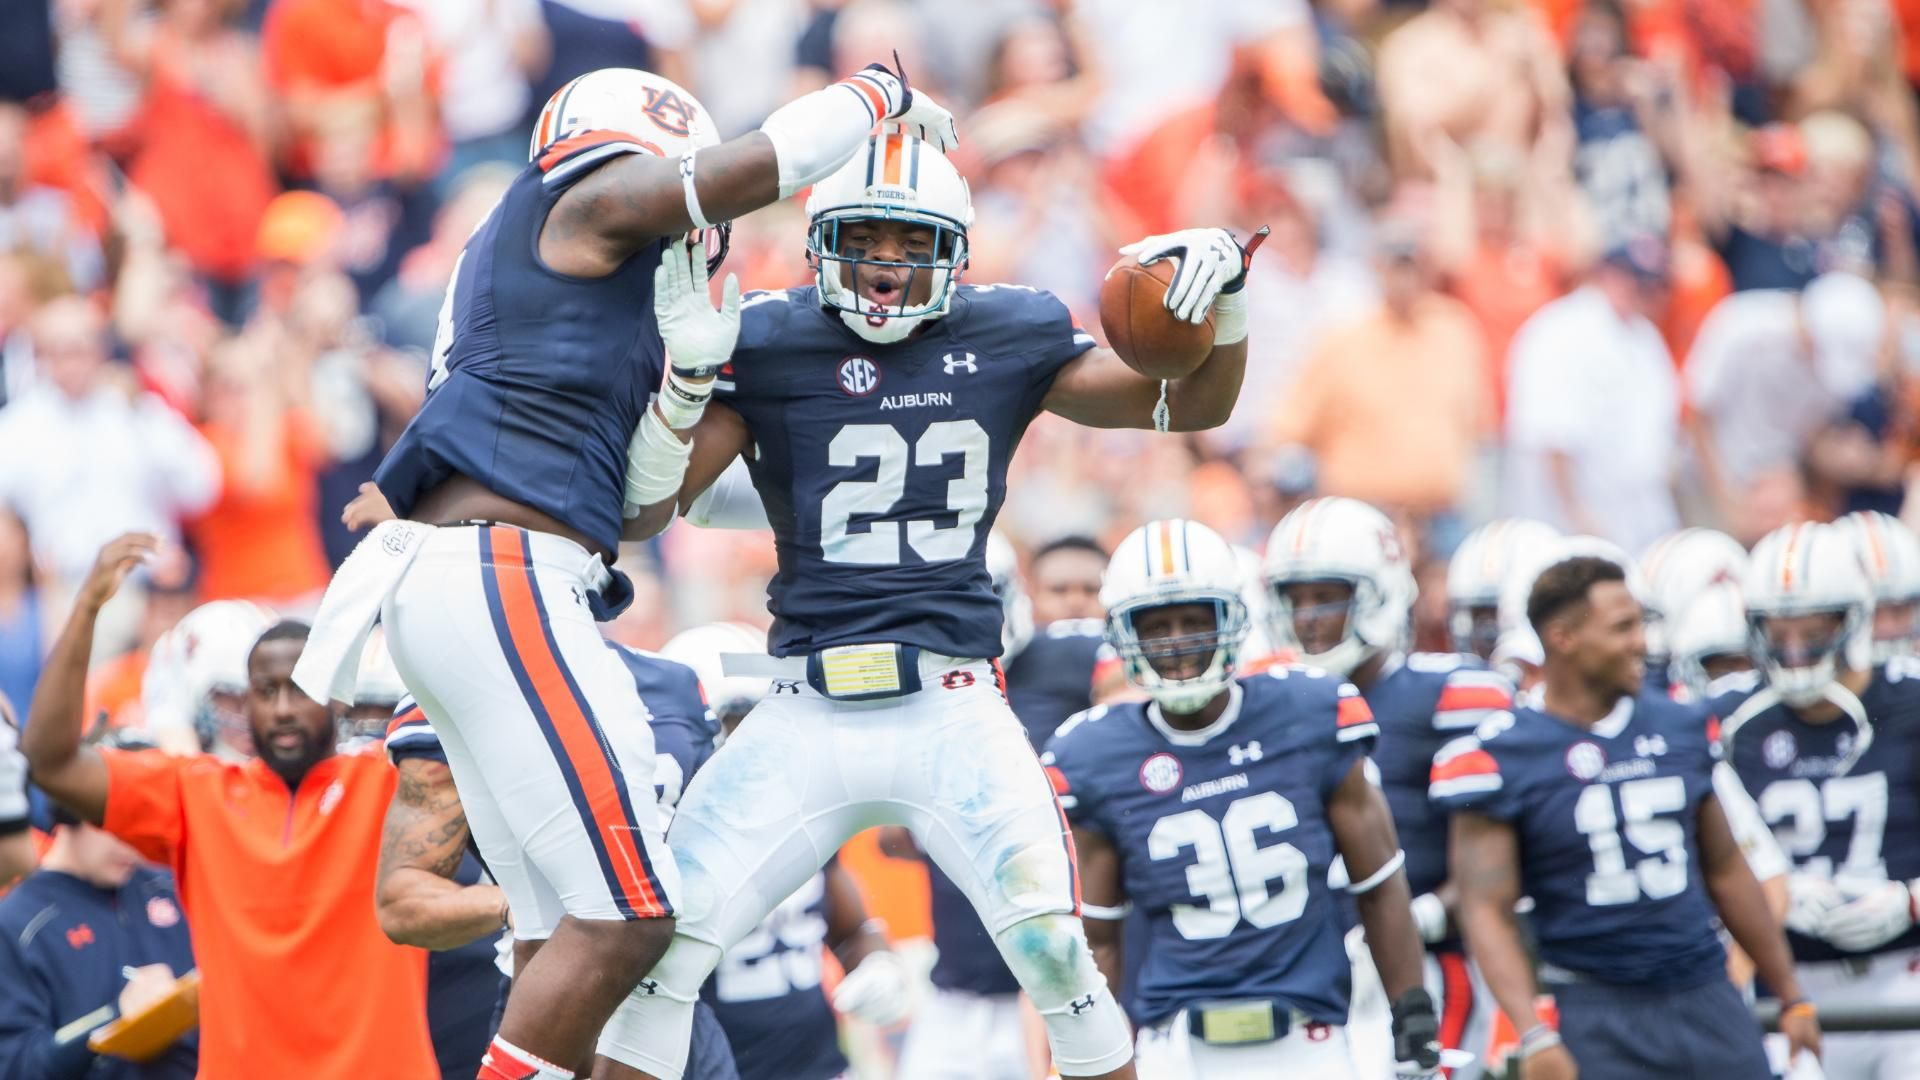 Auburn survives scare from Jacksonville State